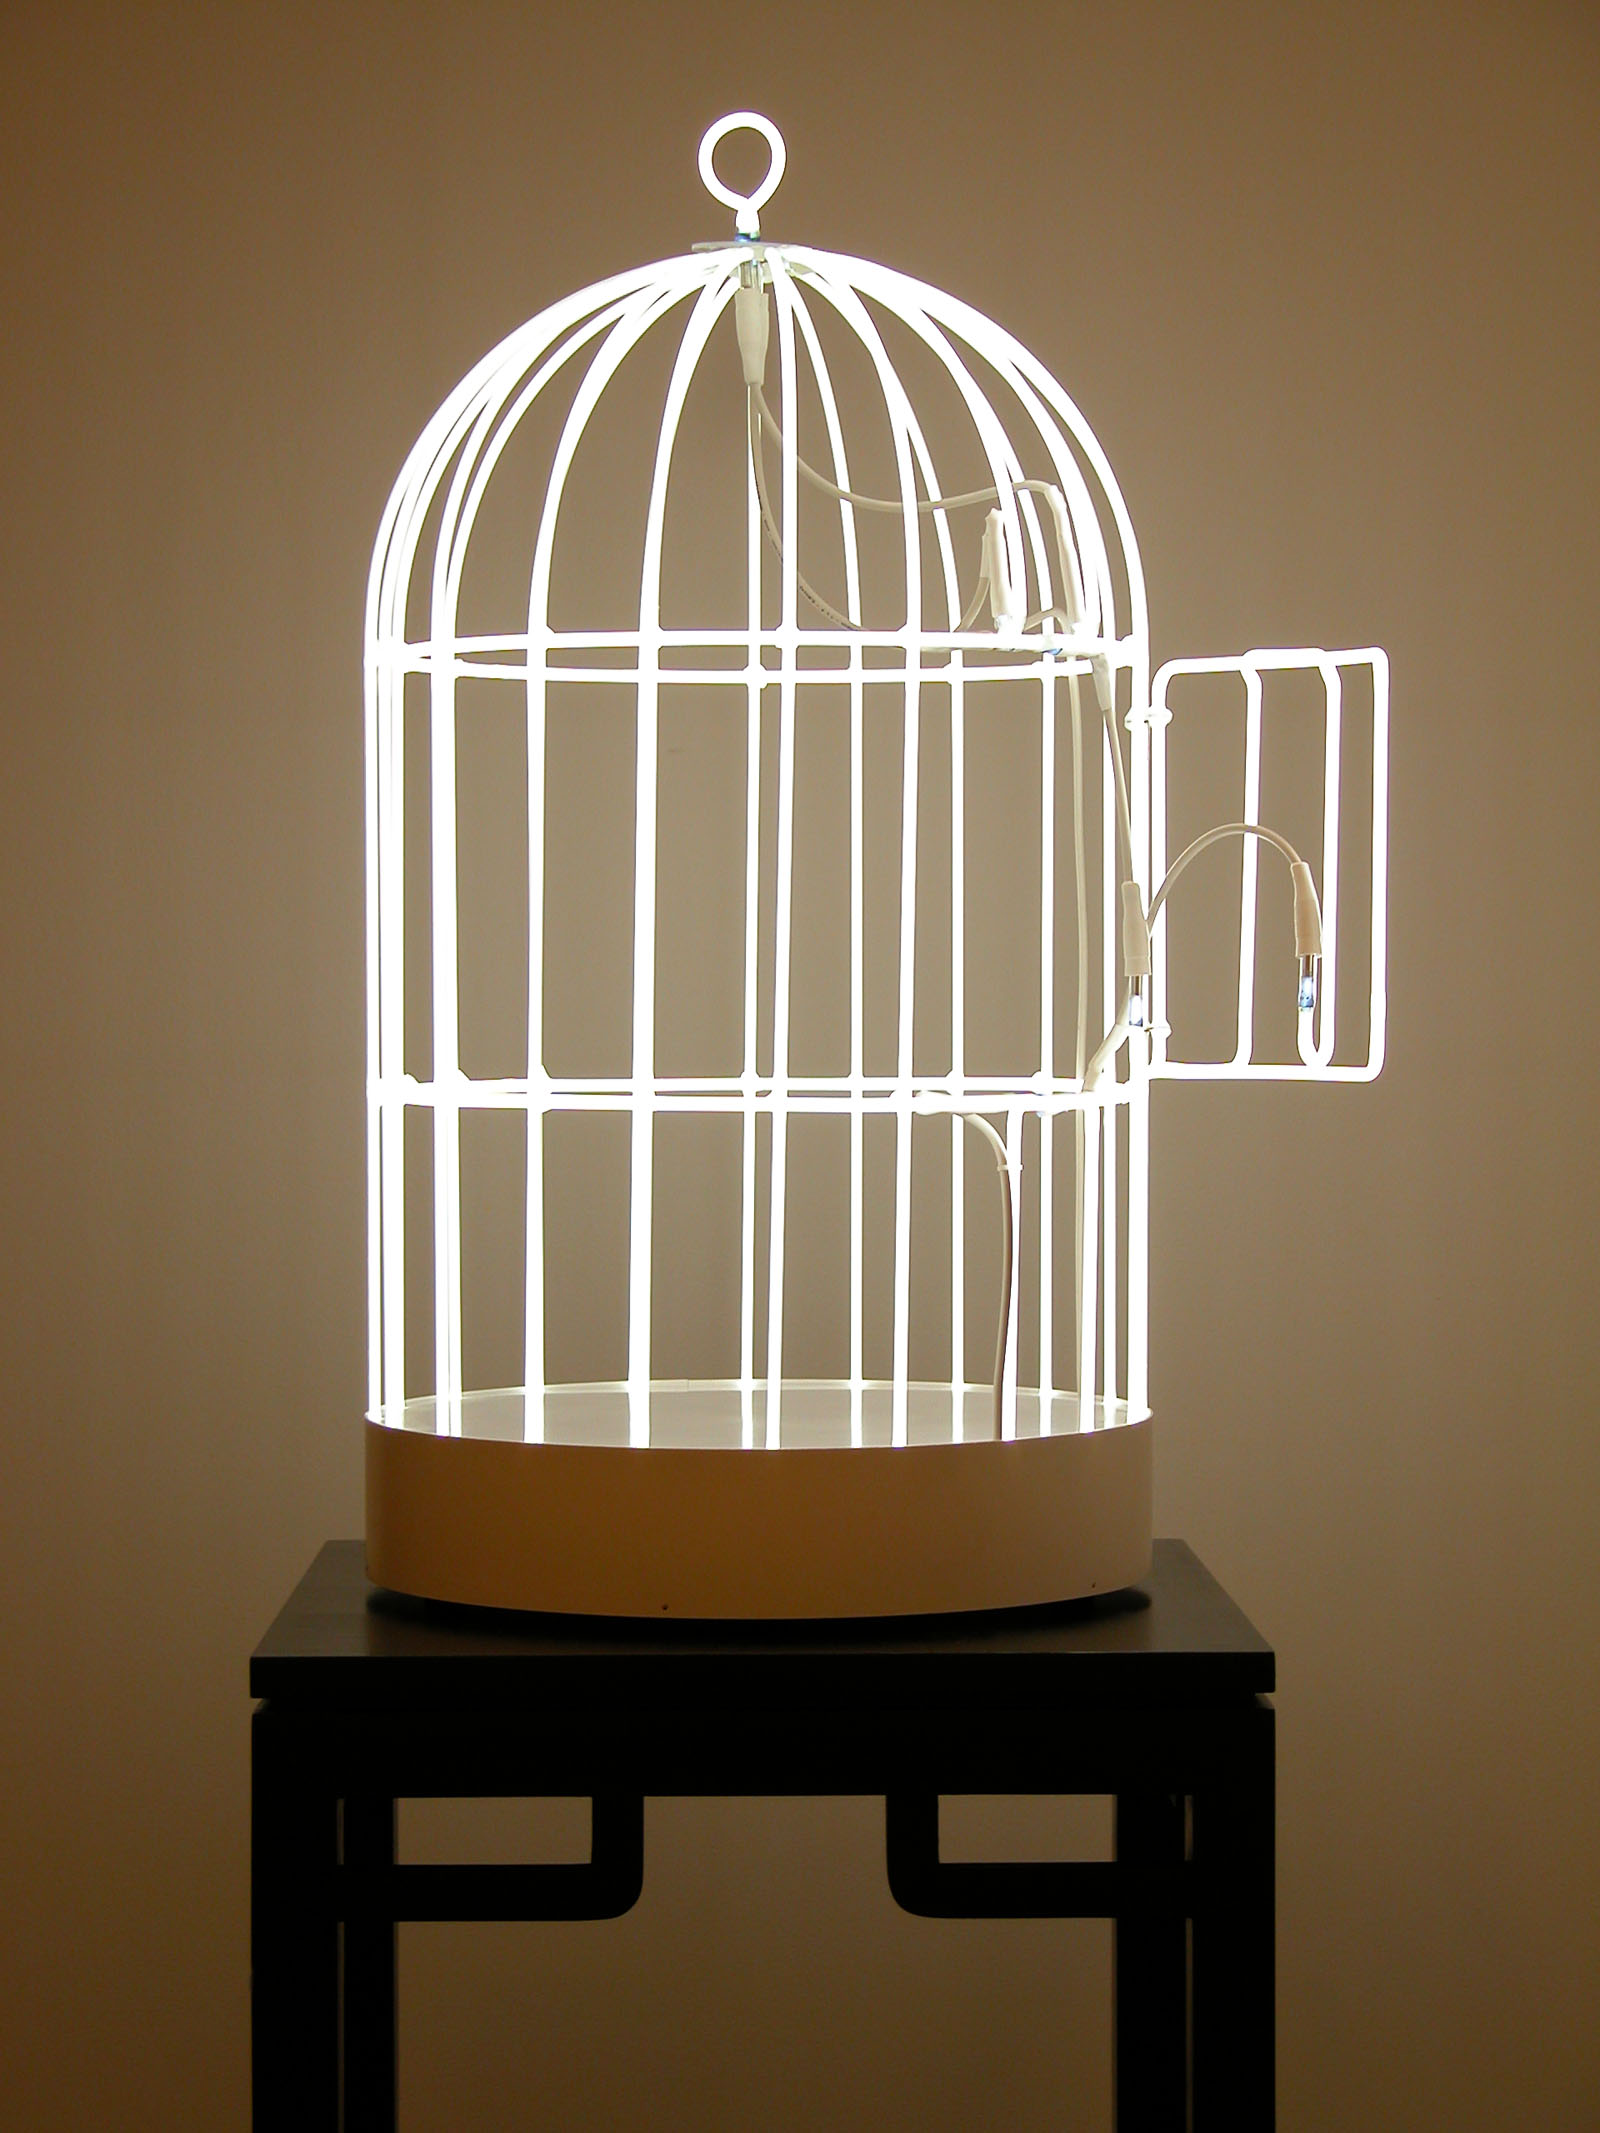 http://art4collectors.files.wordpress.com/2009/05/bird-cage-sculpture-only.jpg